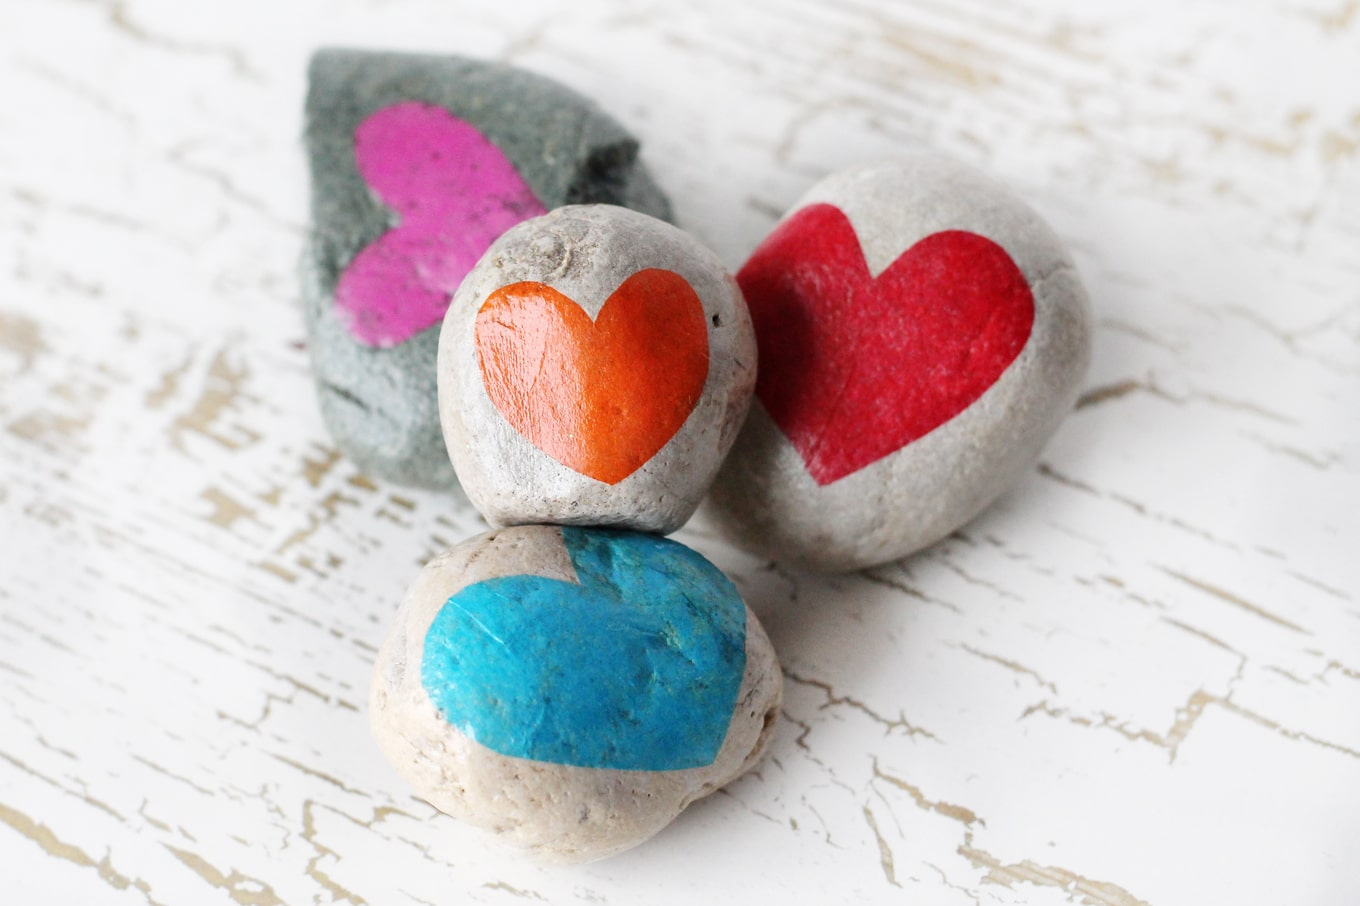 Learn how to use Gratitude Stones to cultivate a sense of gratitude, an important social-emotional skill that can increase happiness and improve health.